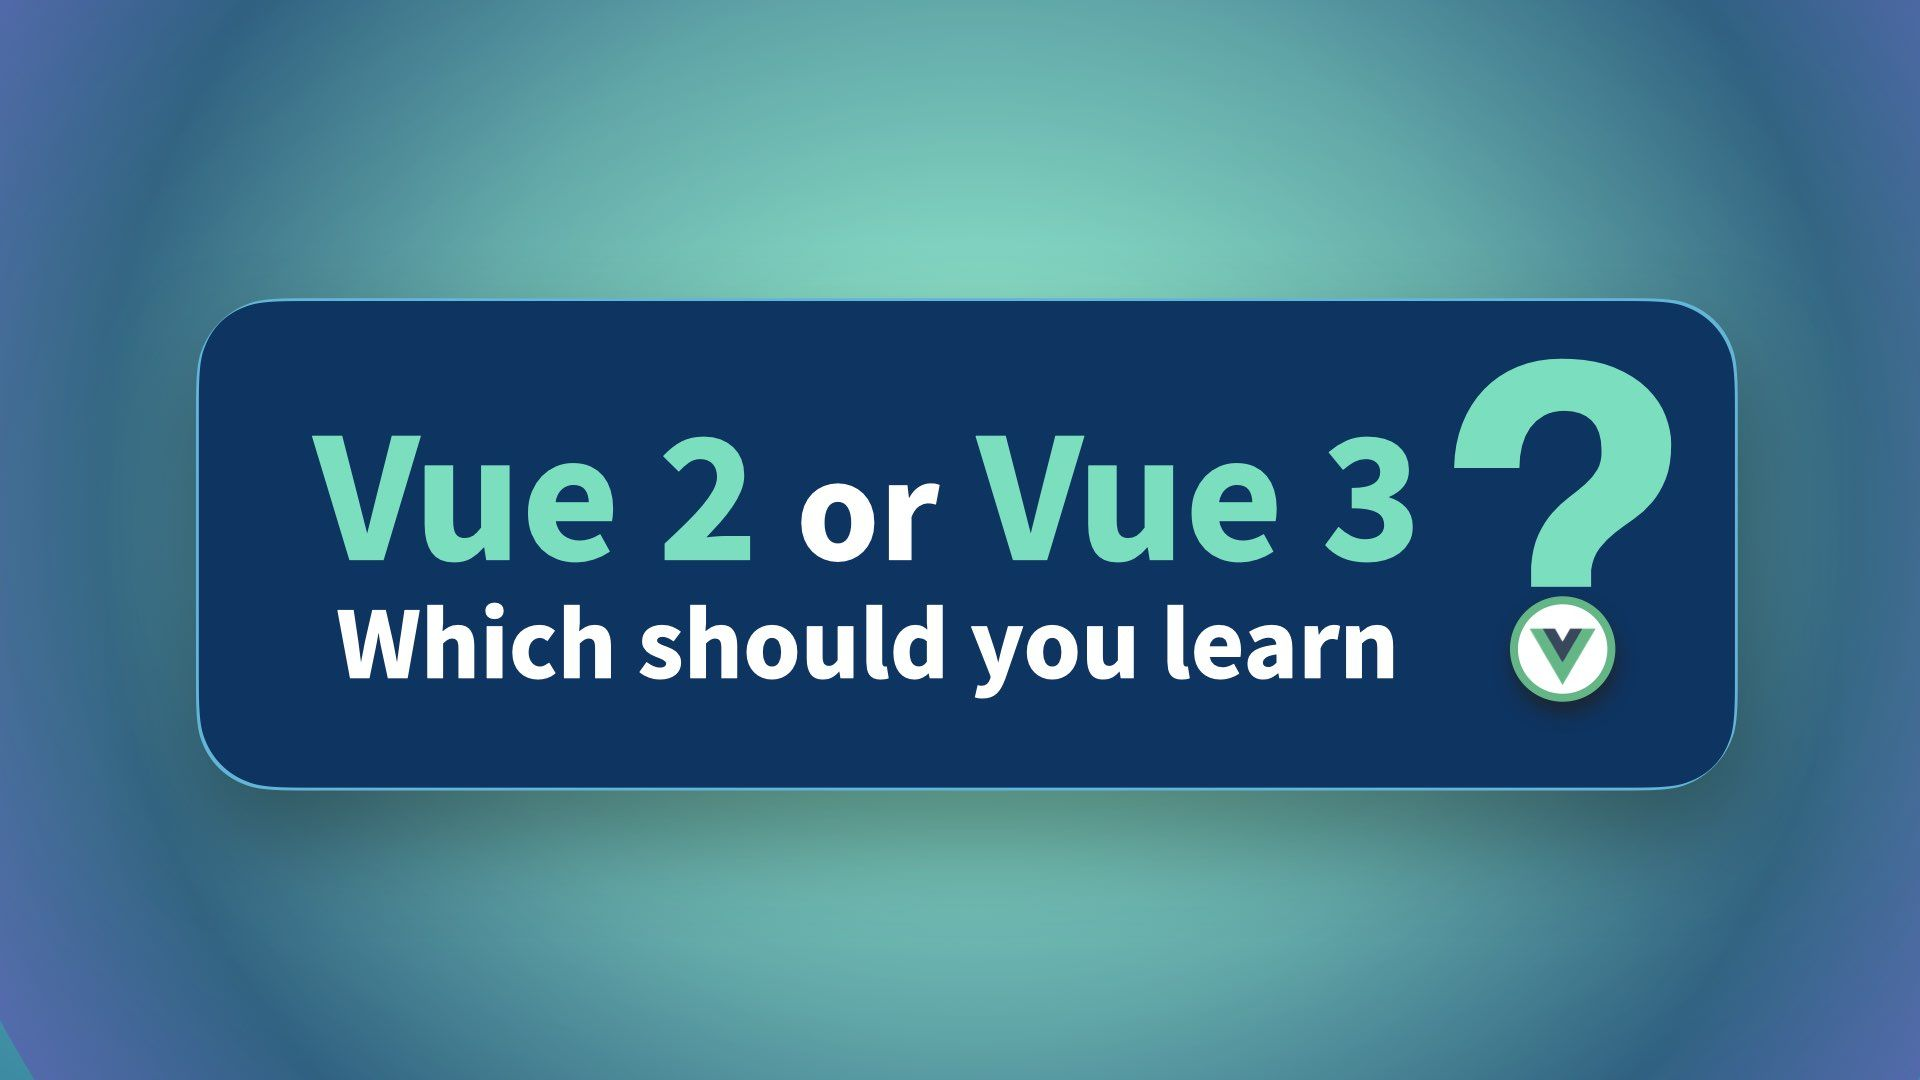 Vue 2 or Vue 3? Which one should I learn?